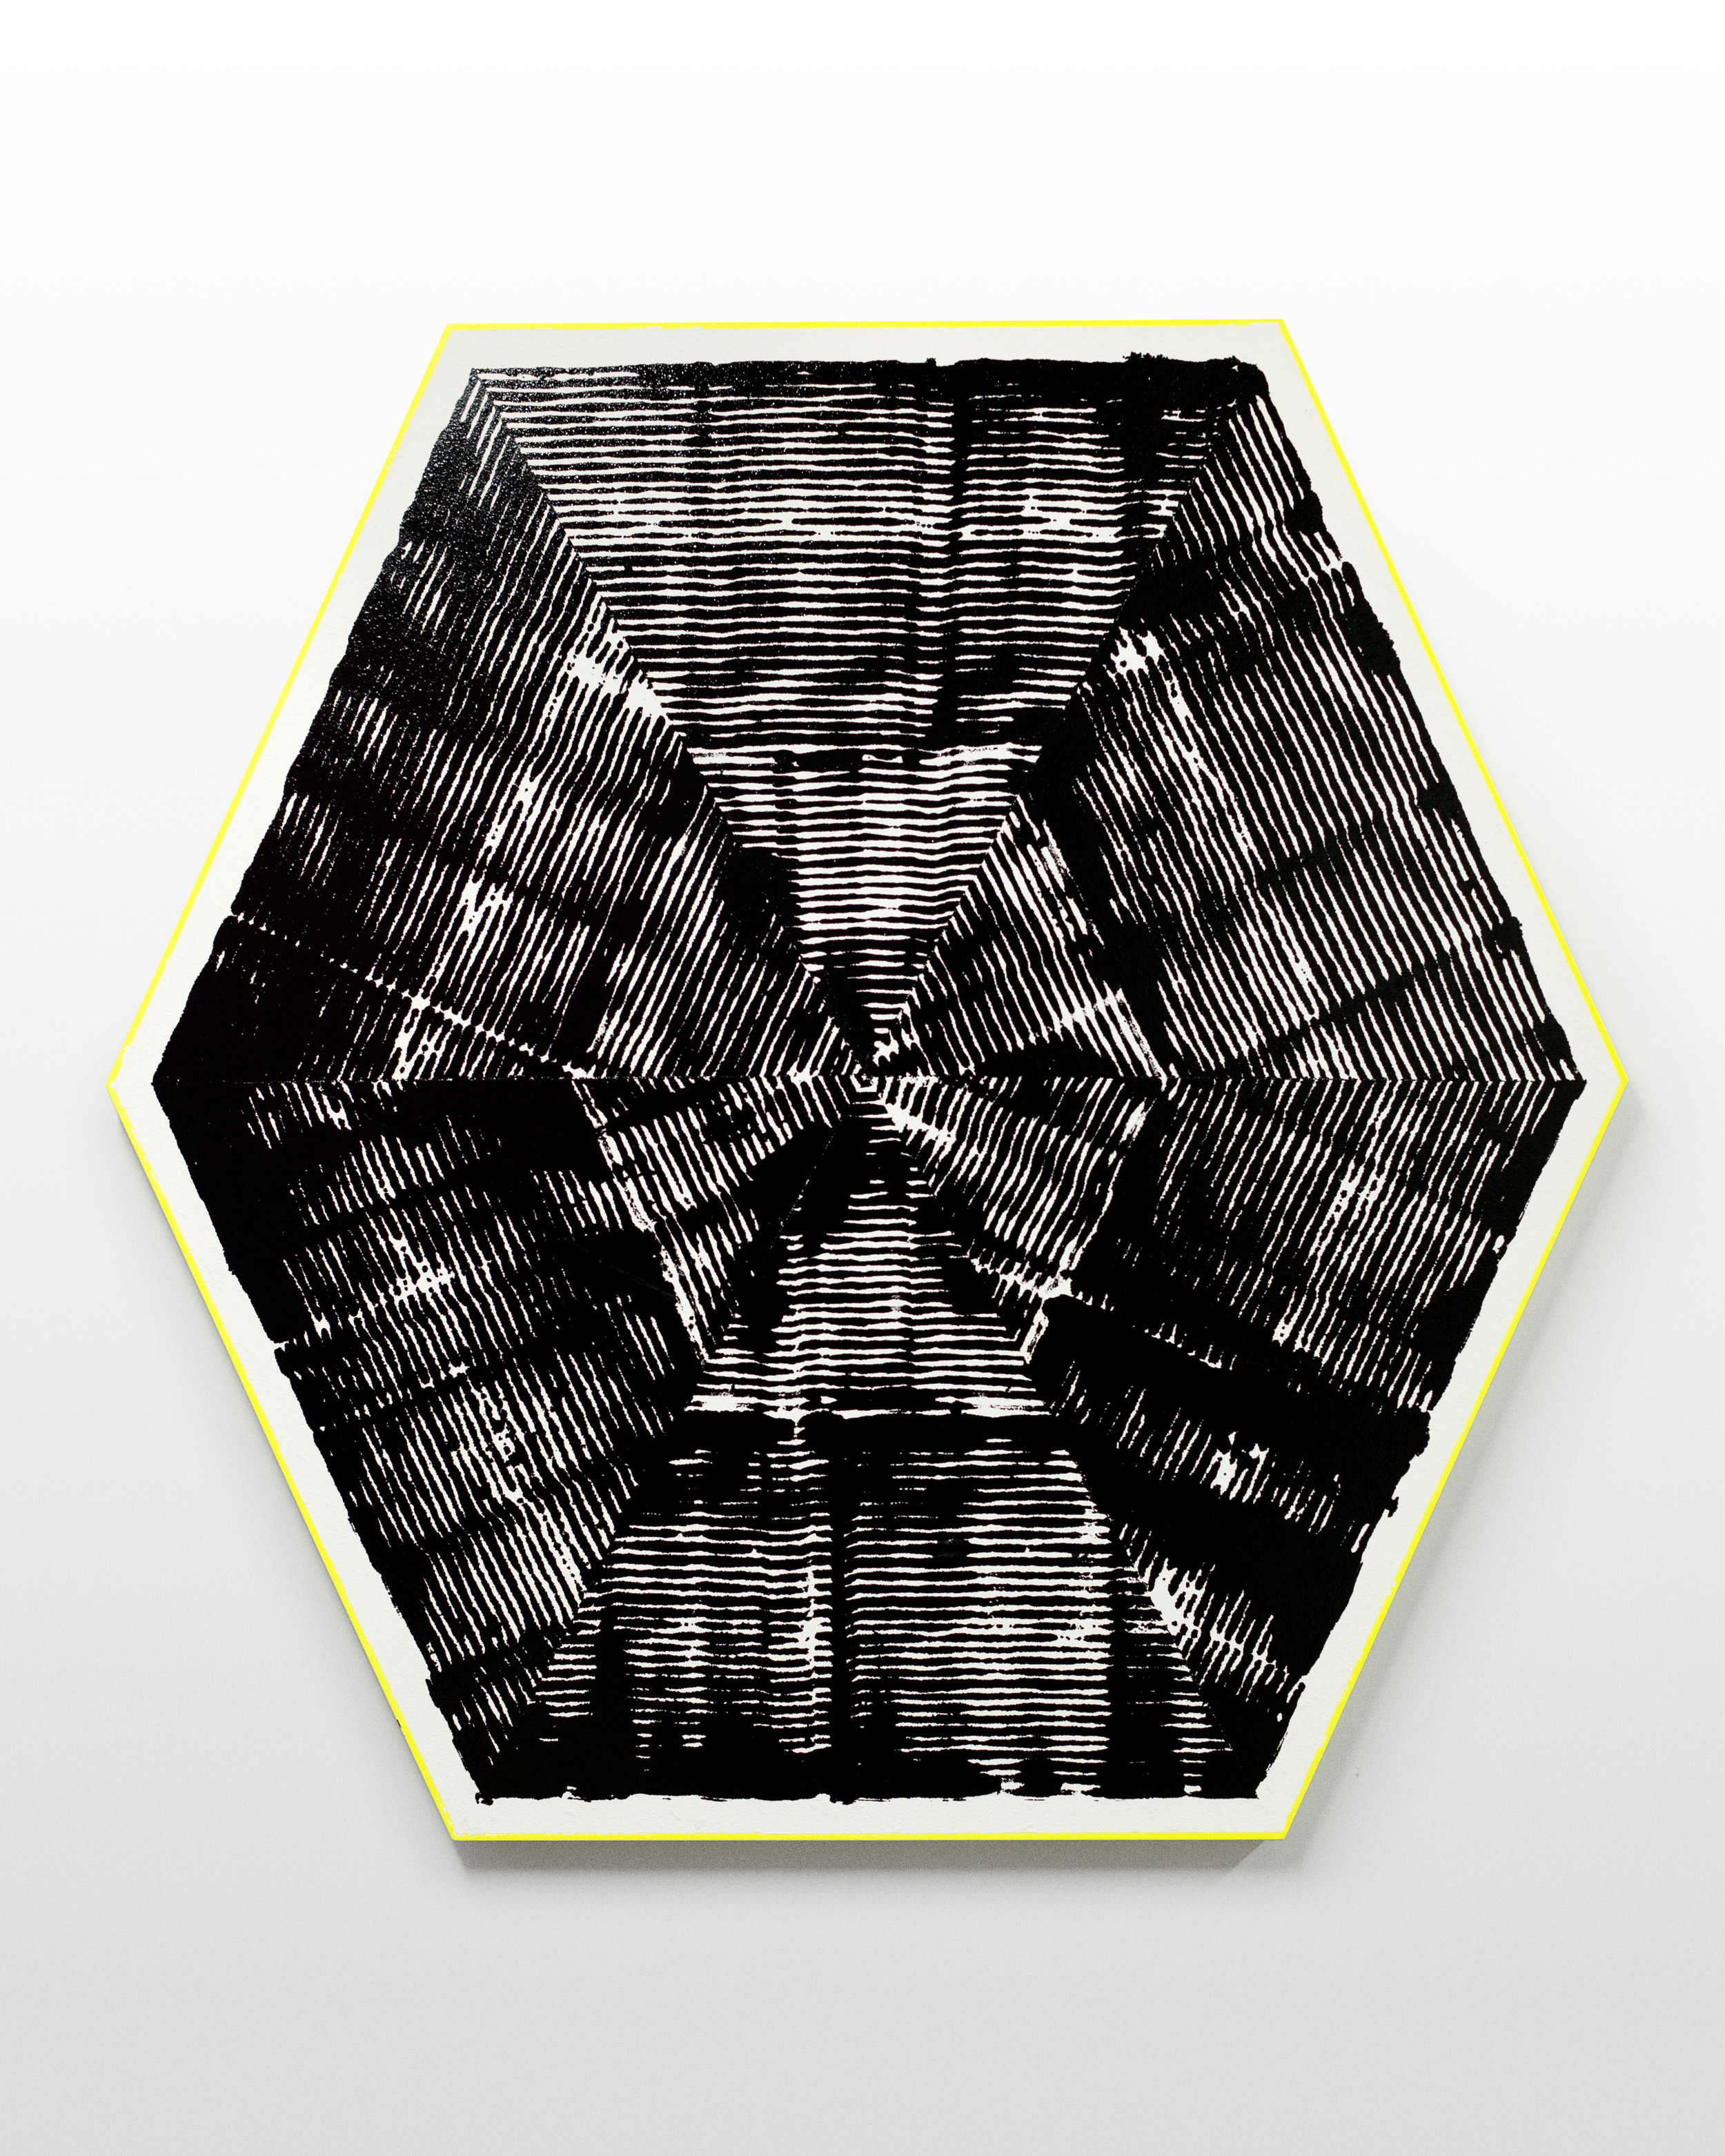 JasonREVOK_Kundalini(Hexagon)_2(loop_painting)_72x72.jpg